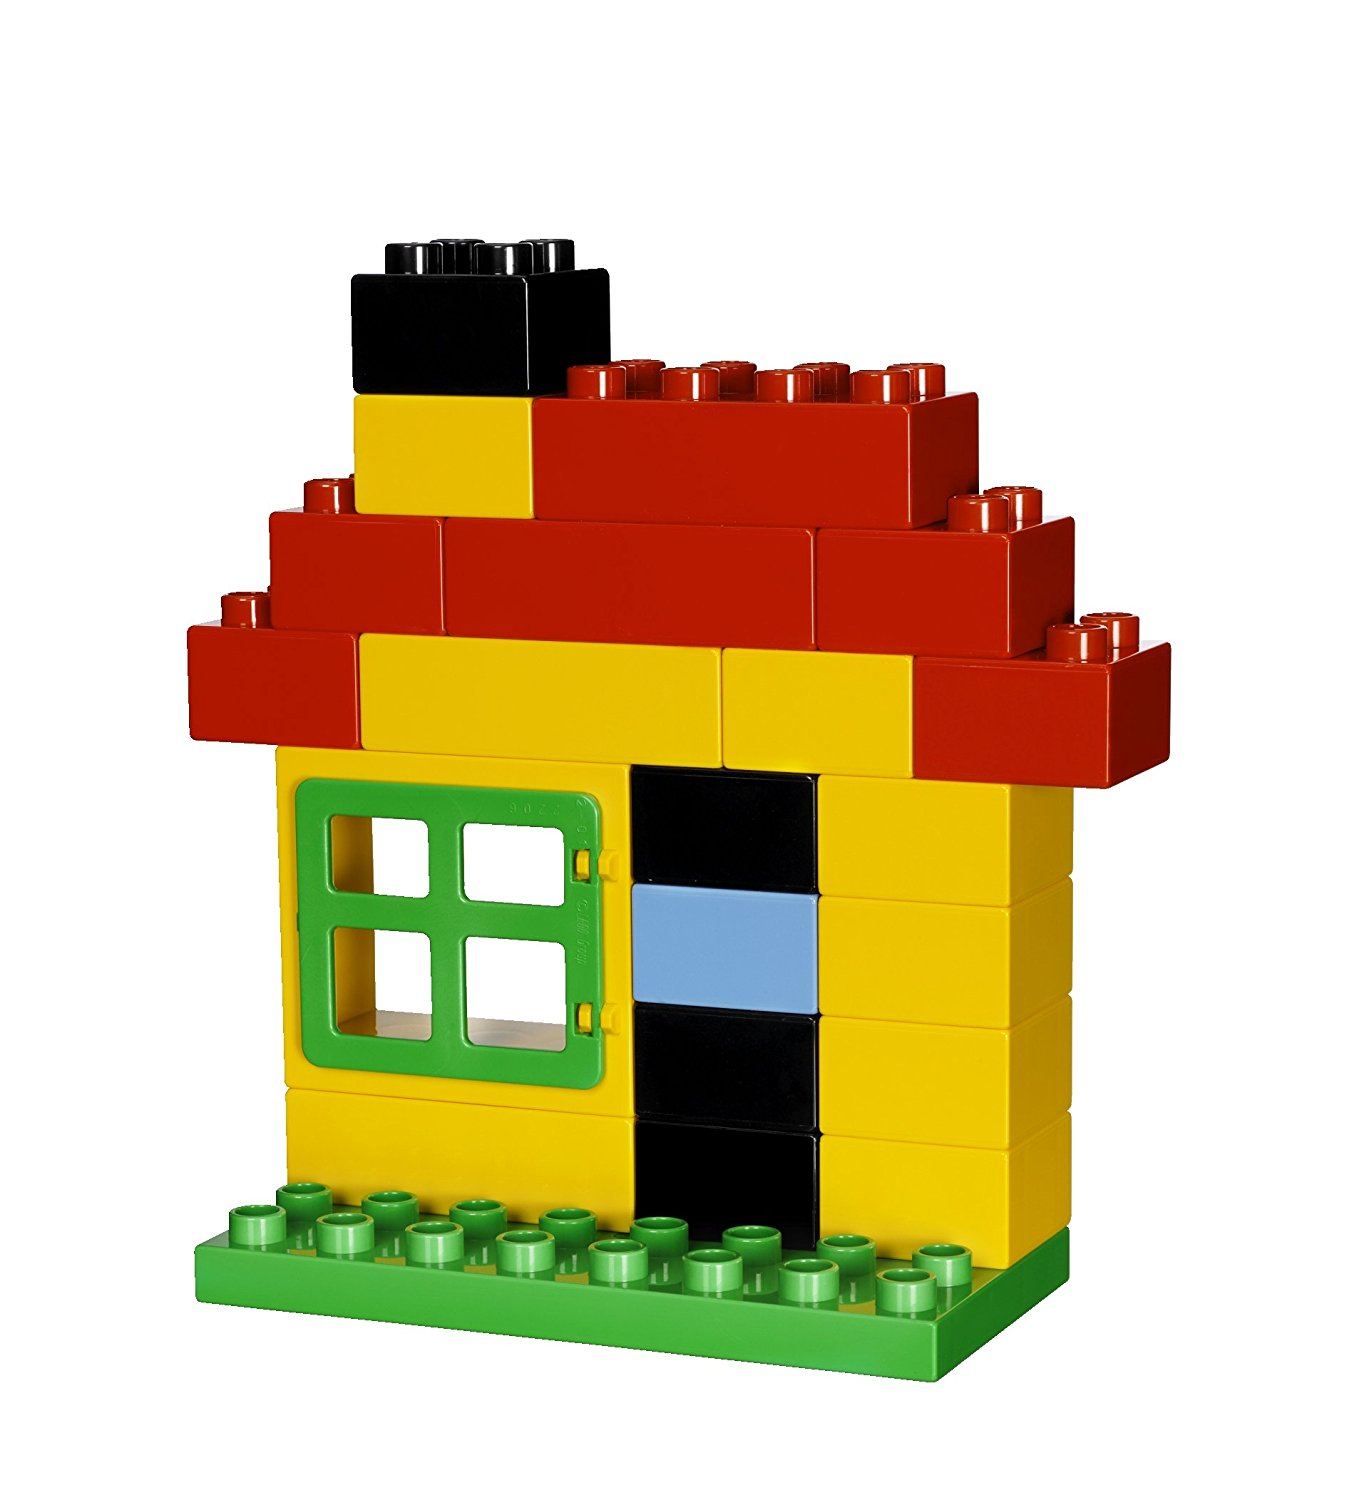 Lego clipart lego house. Brick at getdrawings com